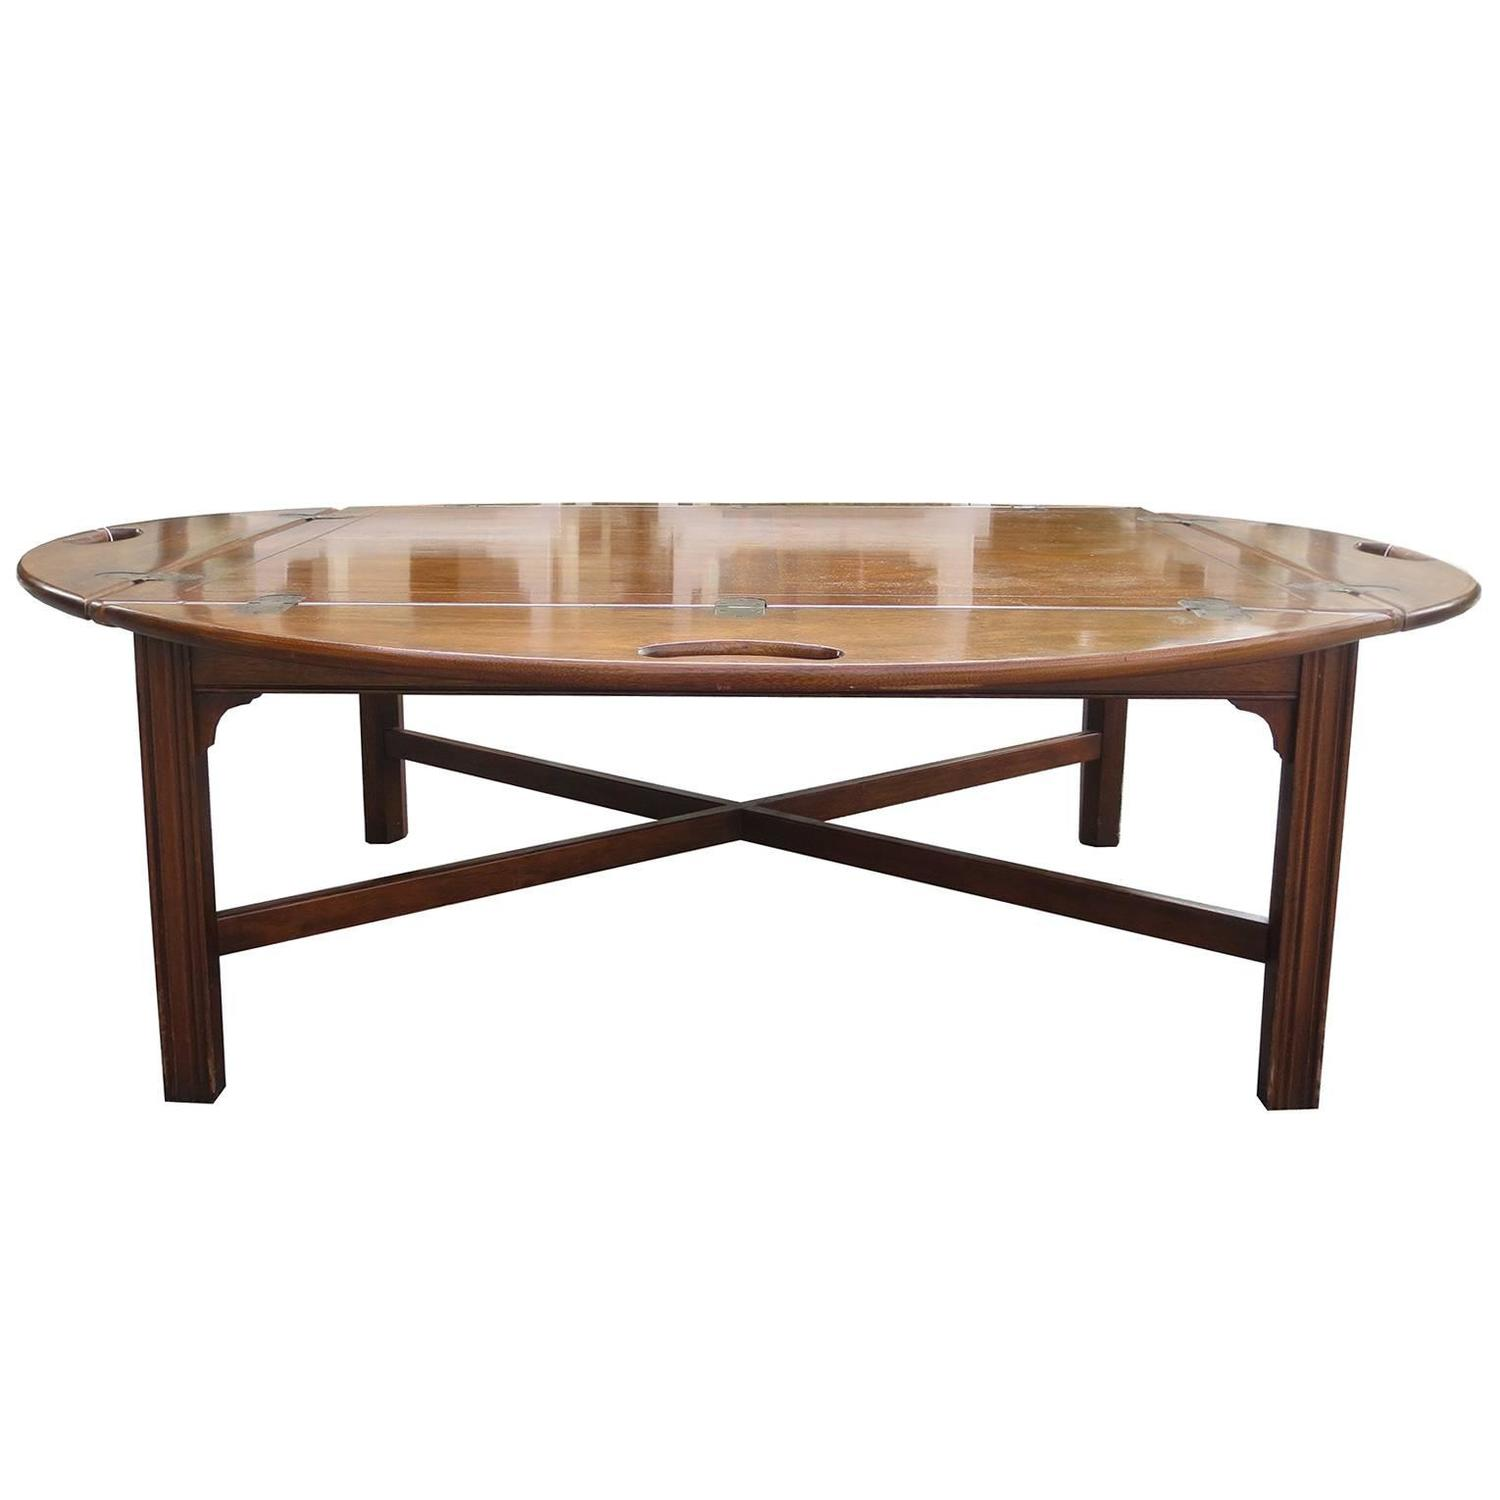 Vintage Butler Coffee Table: Vintage Mahogany Oversized Butler's Tray Coffee Table By